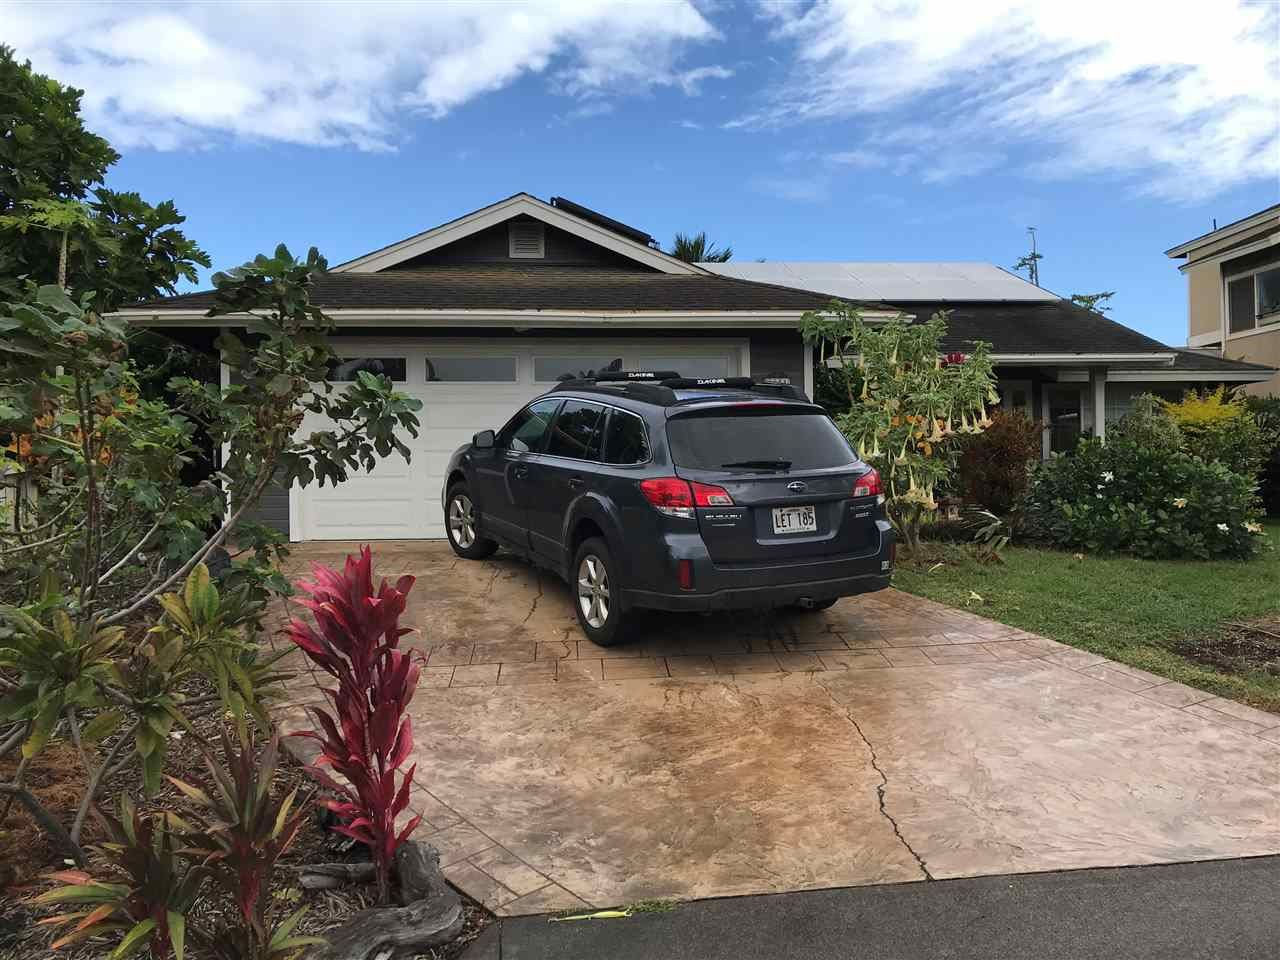 Photo of 27 S Laelua Pl, Paia, HI 96779 (MLS # 388816)